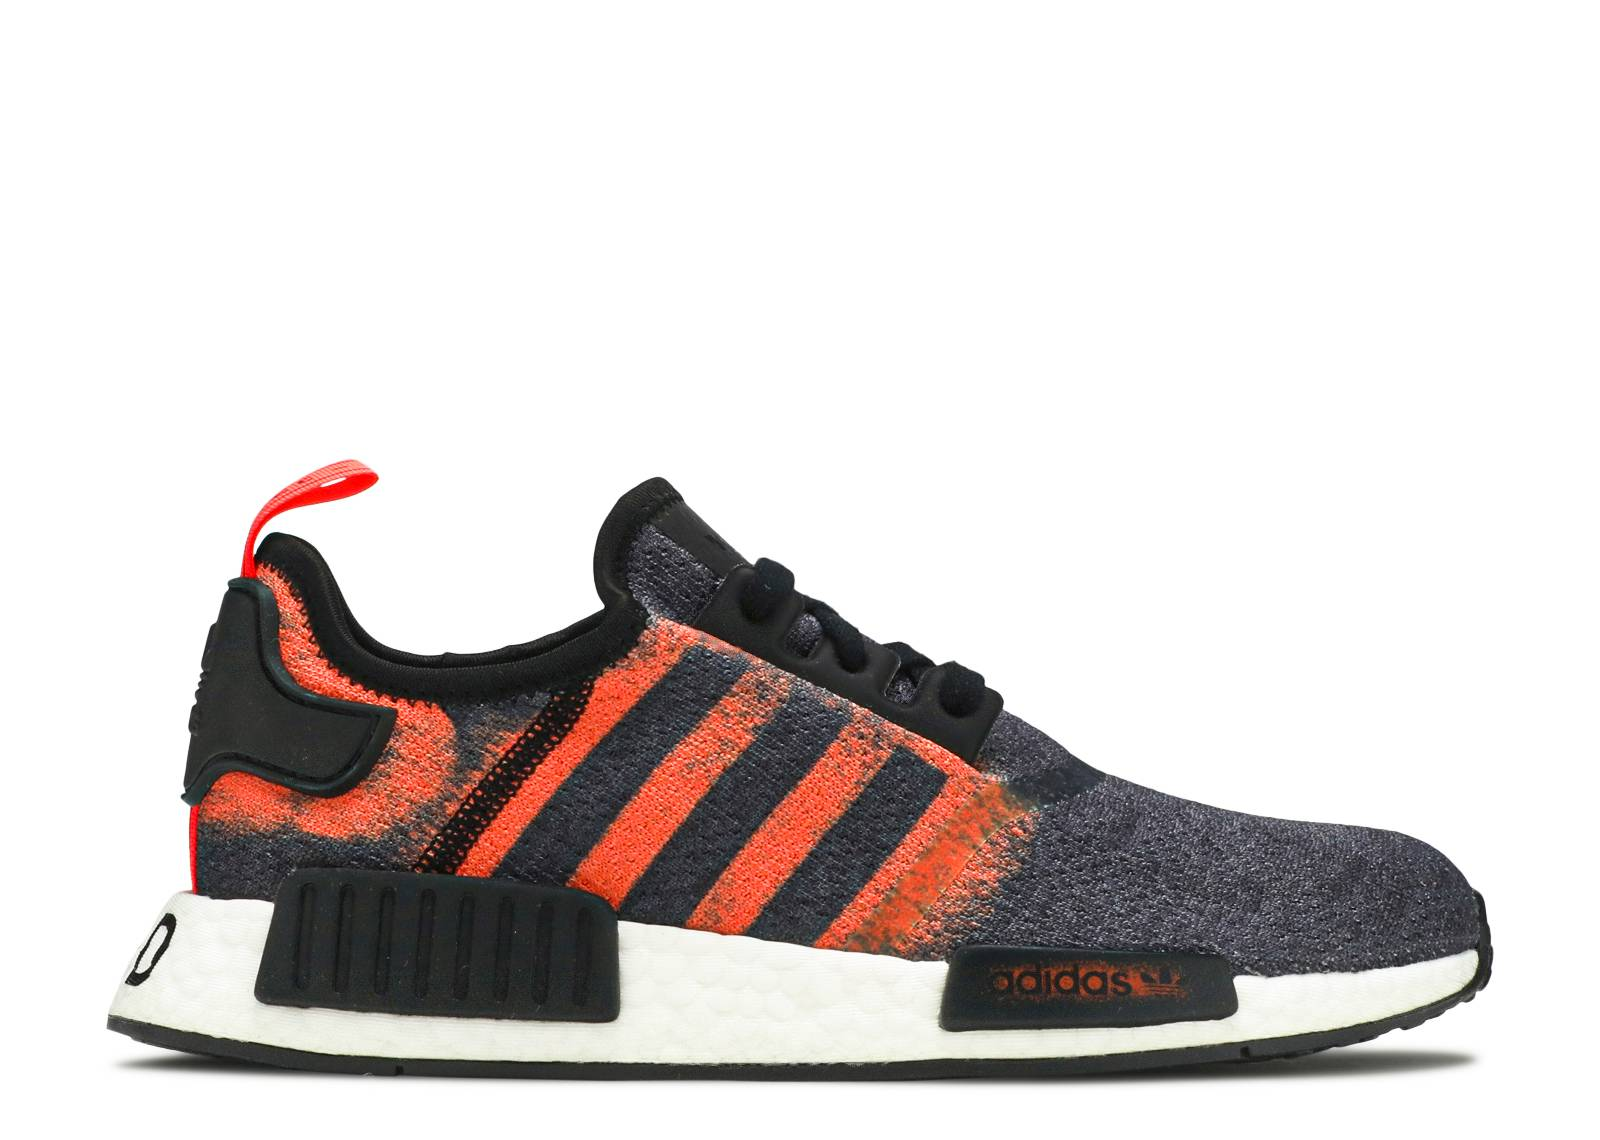 28818d0c2a575 Adidas NMD - adidas Originals Men s   Women s Shoes